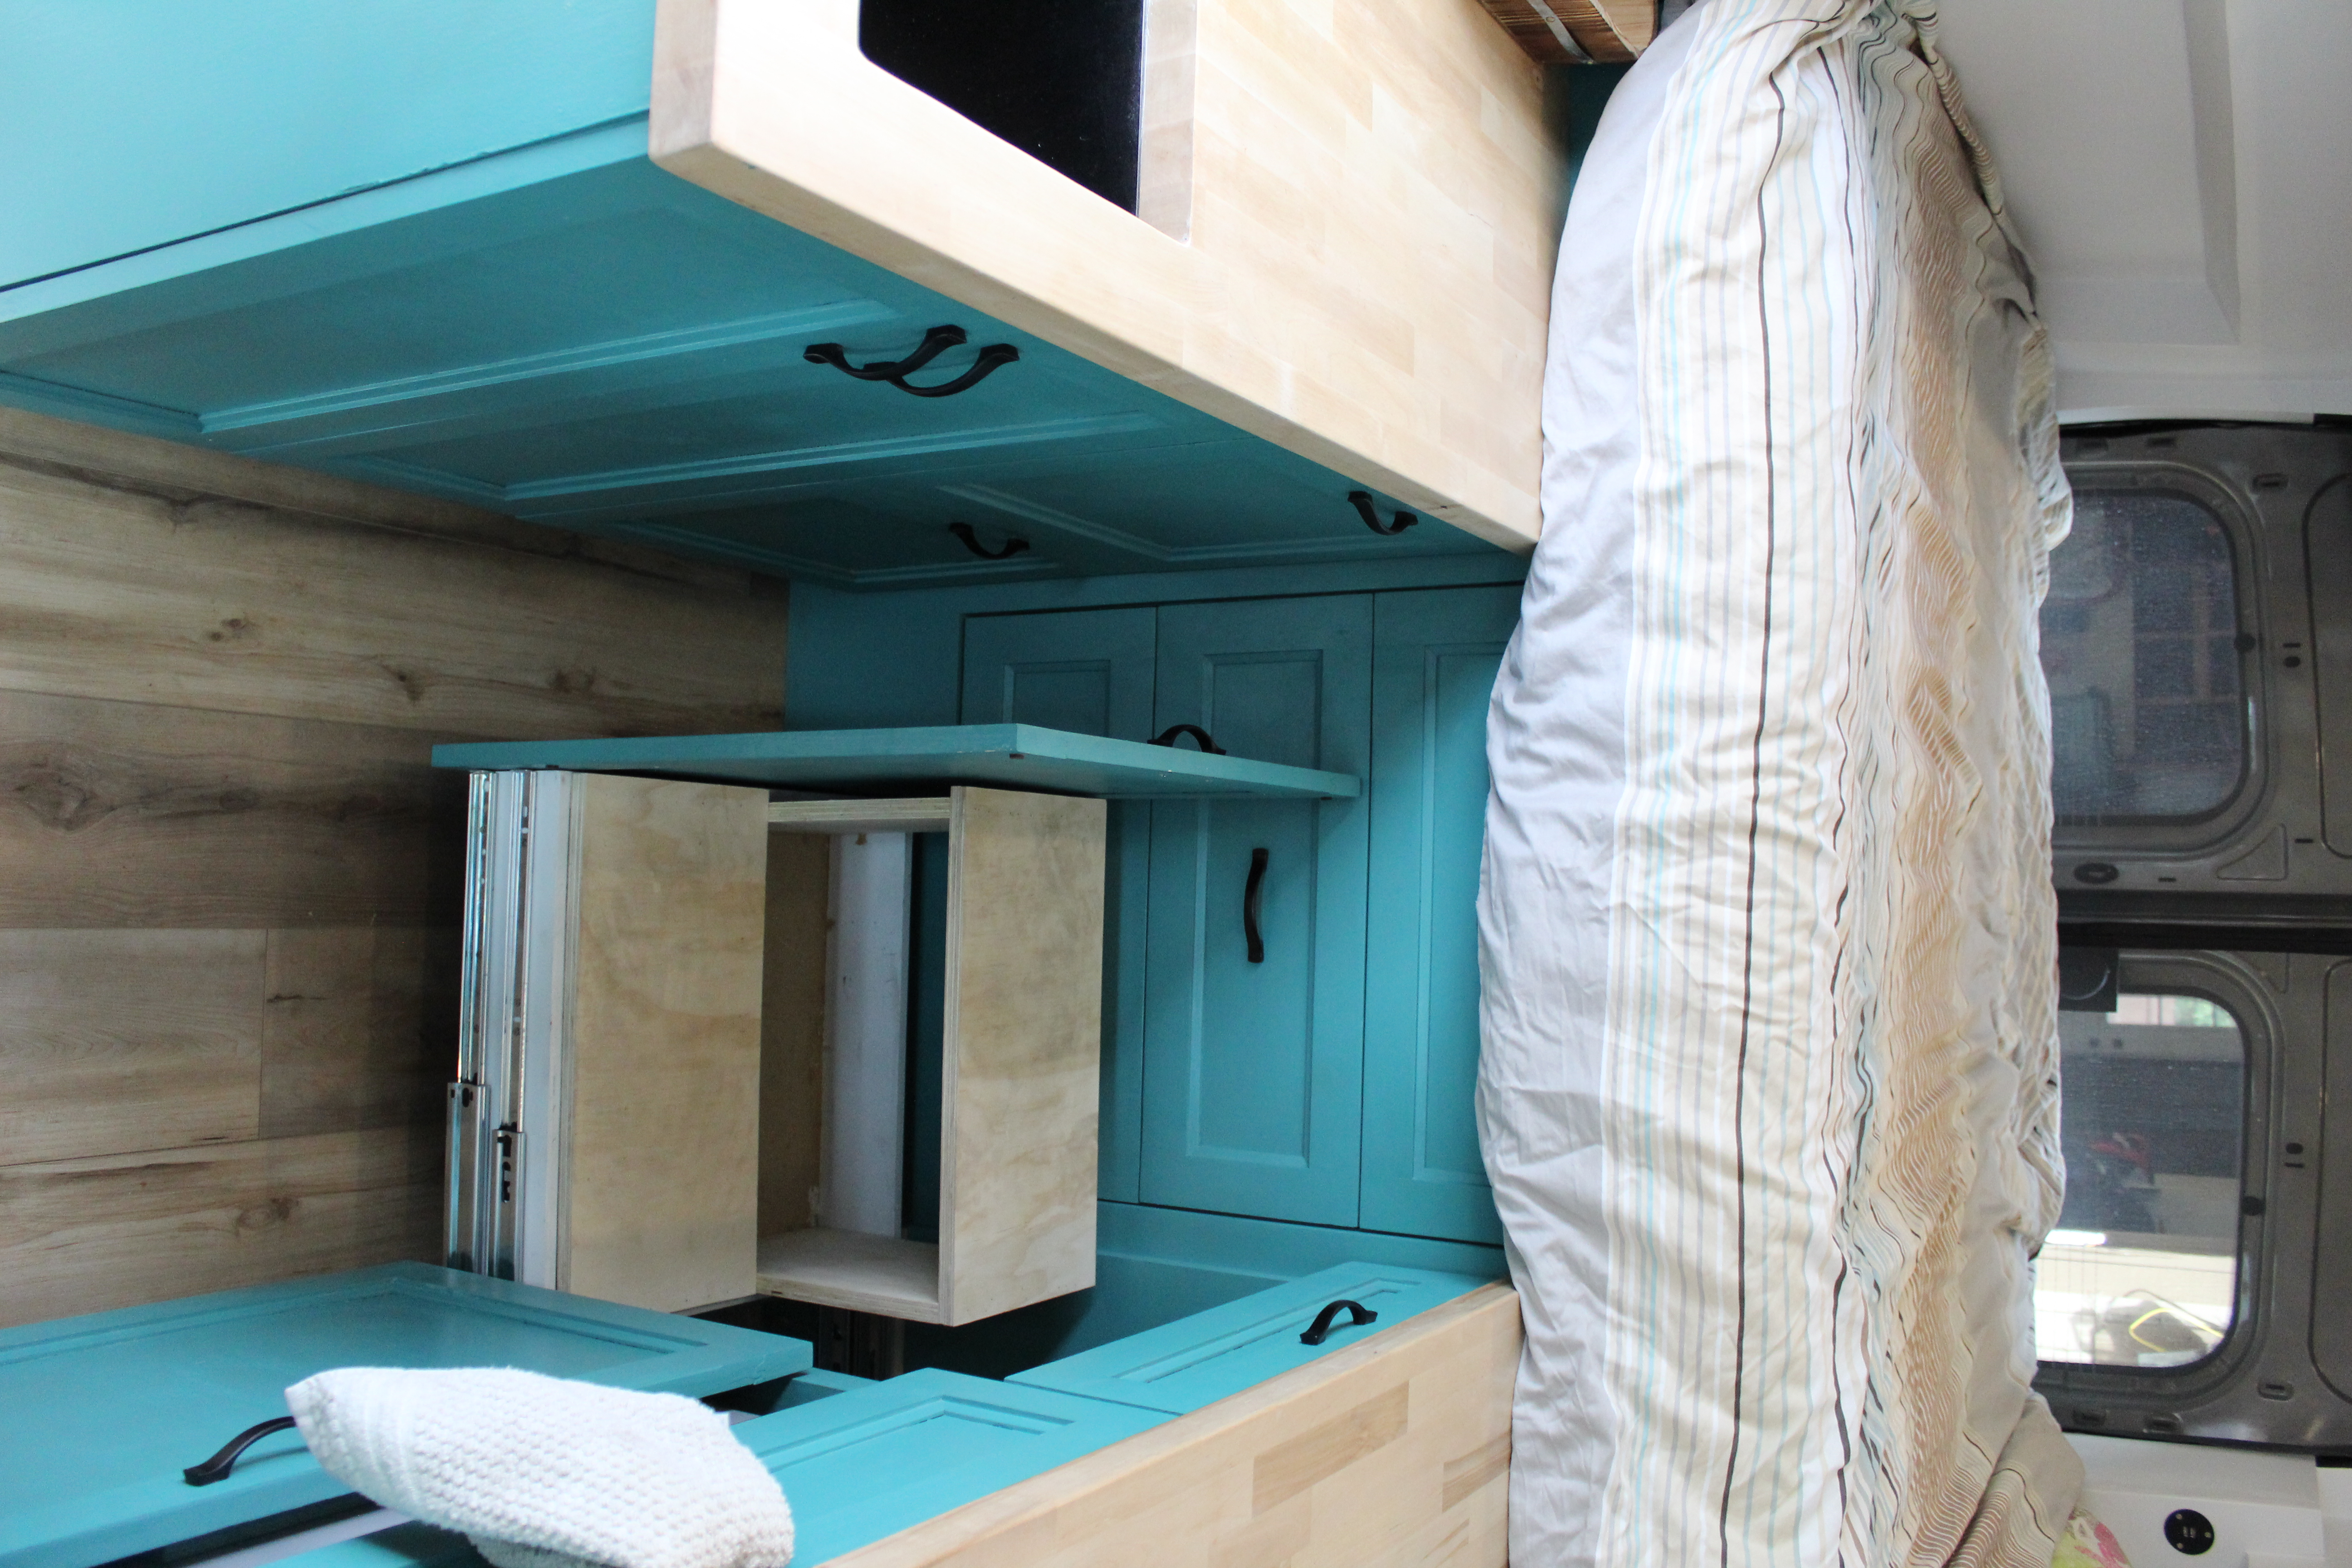 Stairs to get up and down from the bed. Ford Transit 2020